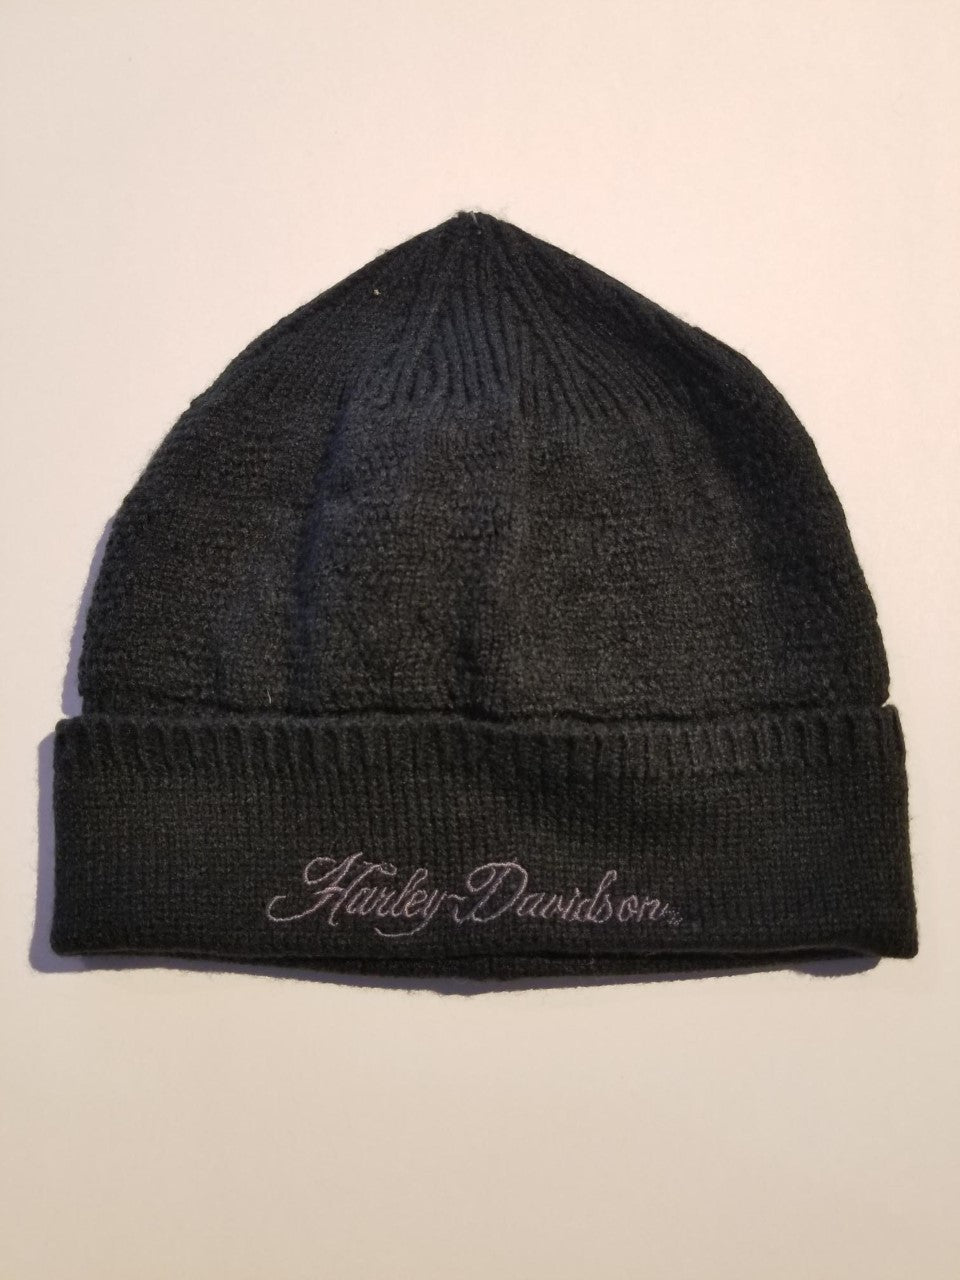 Harley-Davidson knit hat, cuffed nov del/women's black